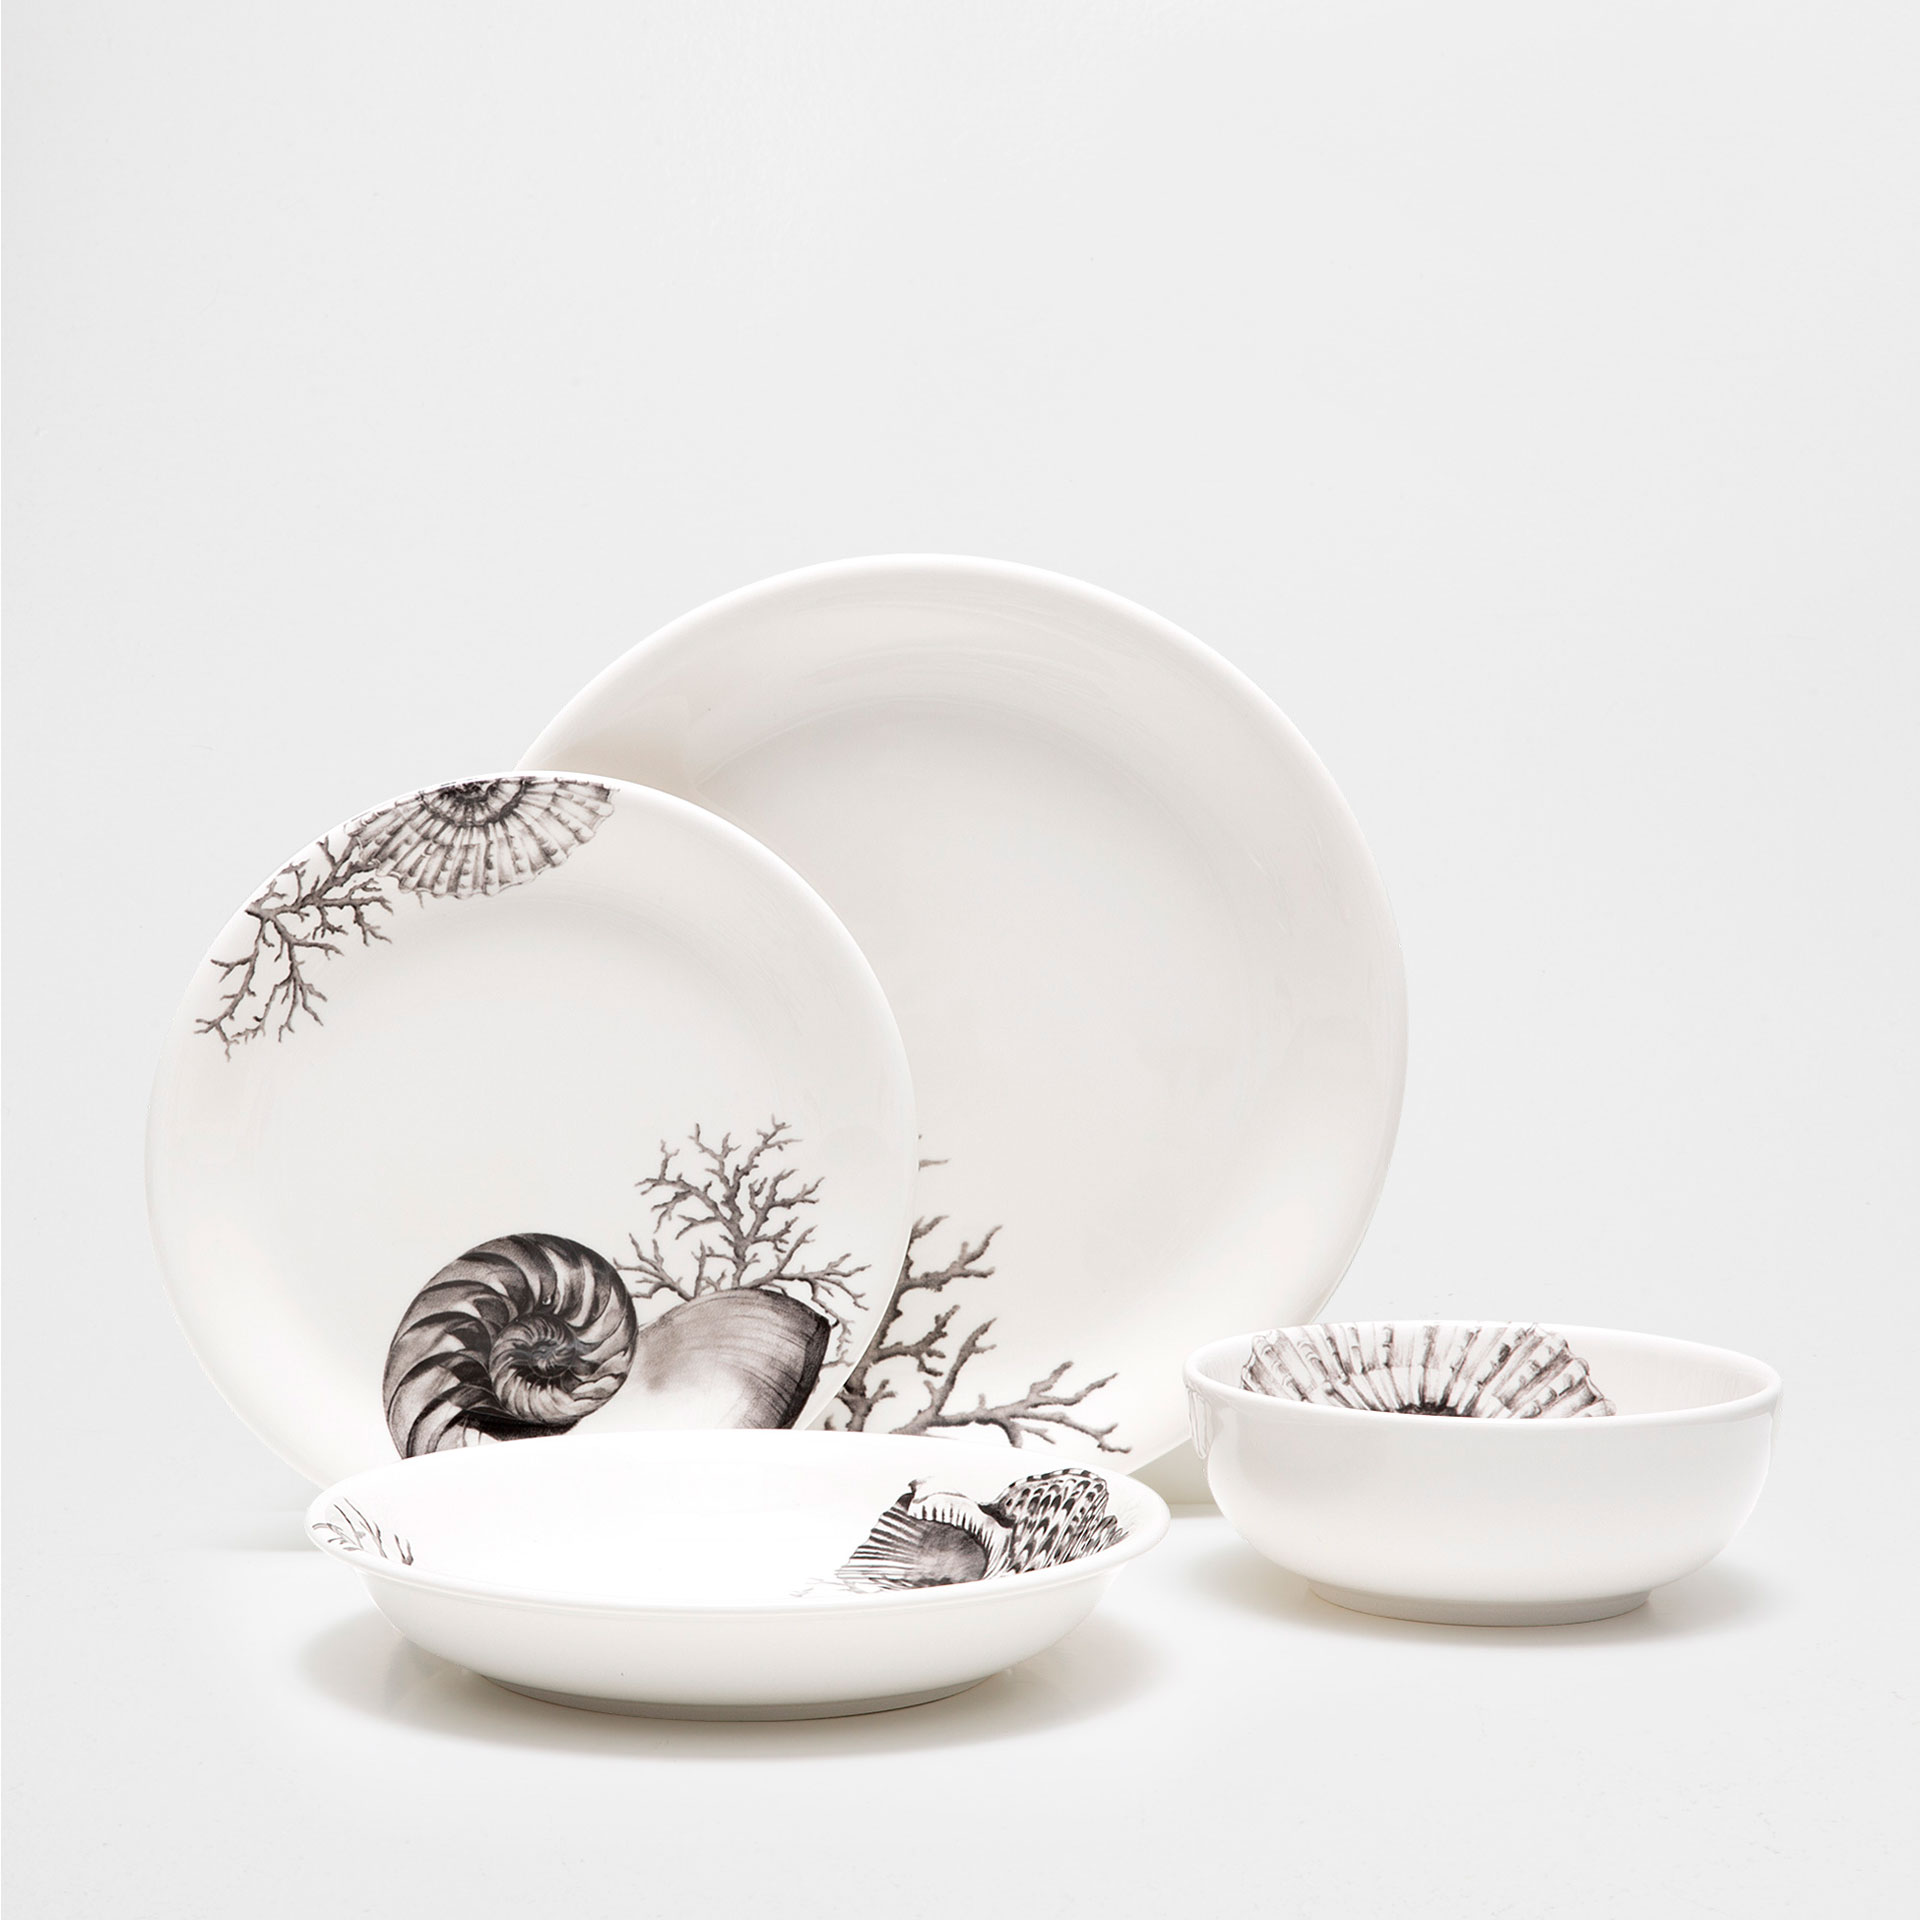 Coral dinnerware from Zara Home